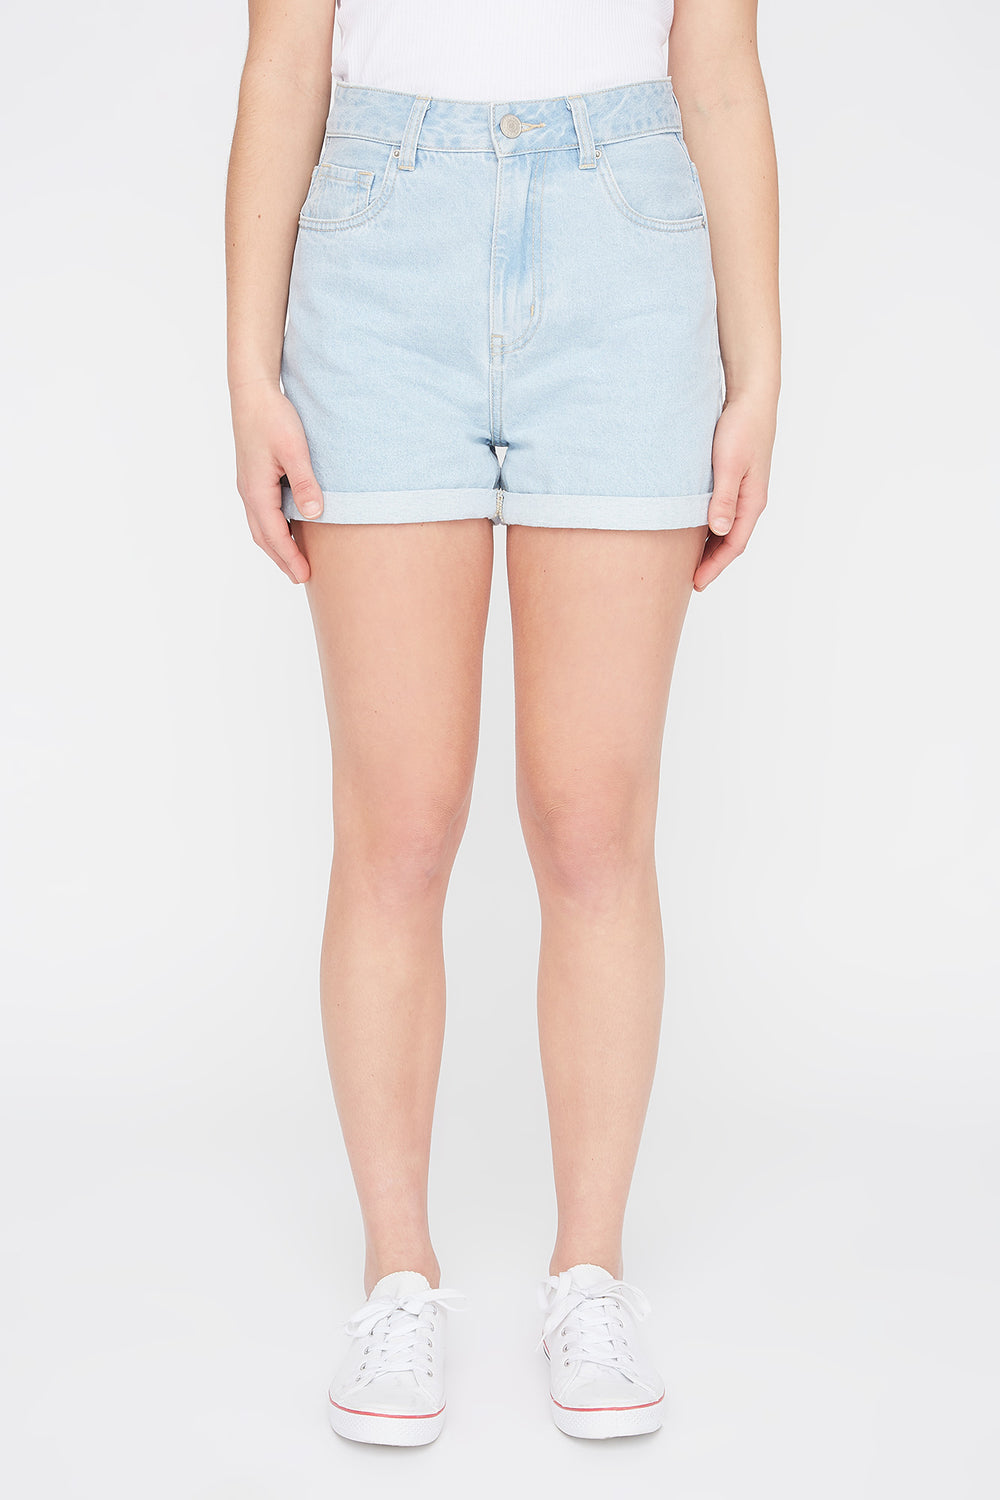 Zoo York Womens Light Wash Mom Jean Short Light Denim Blue